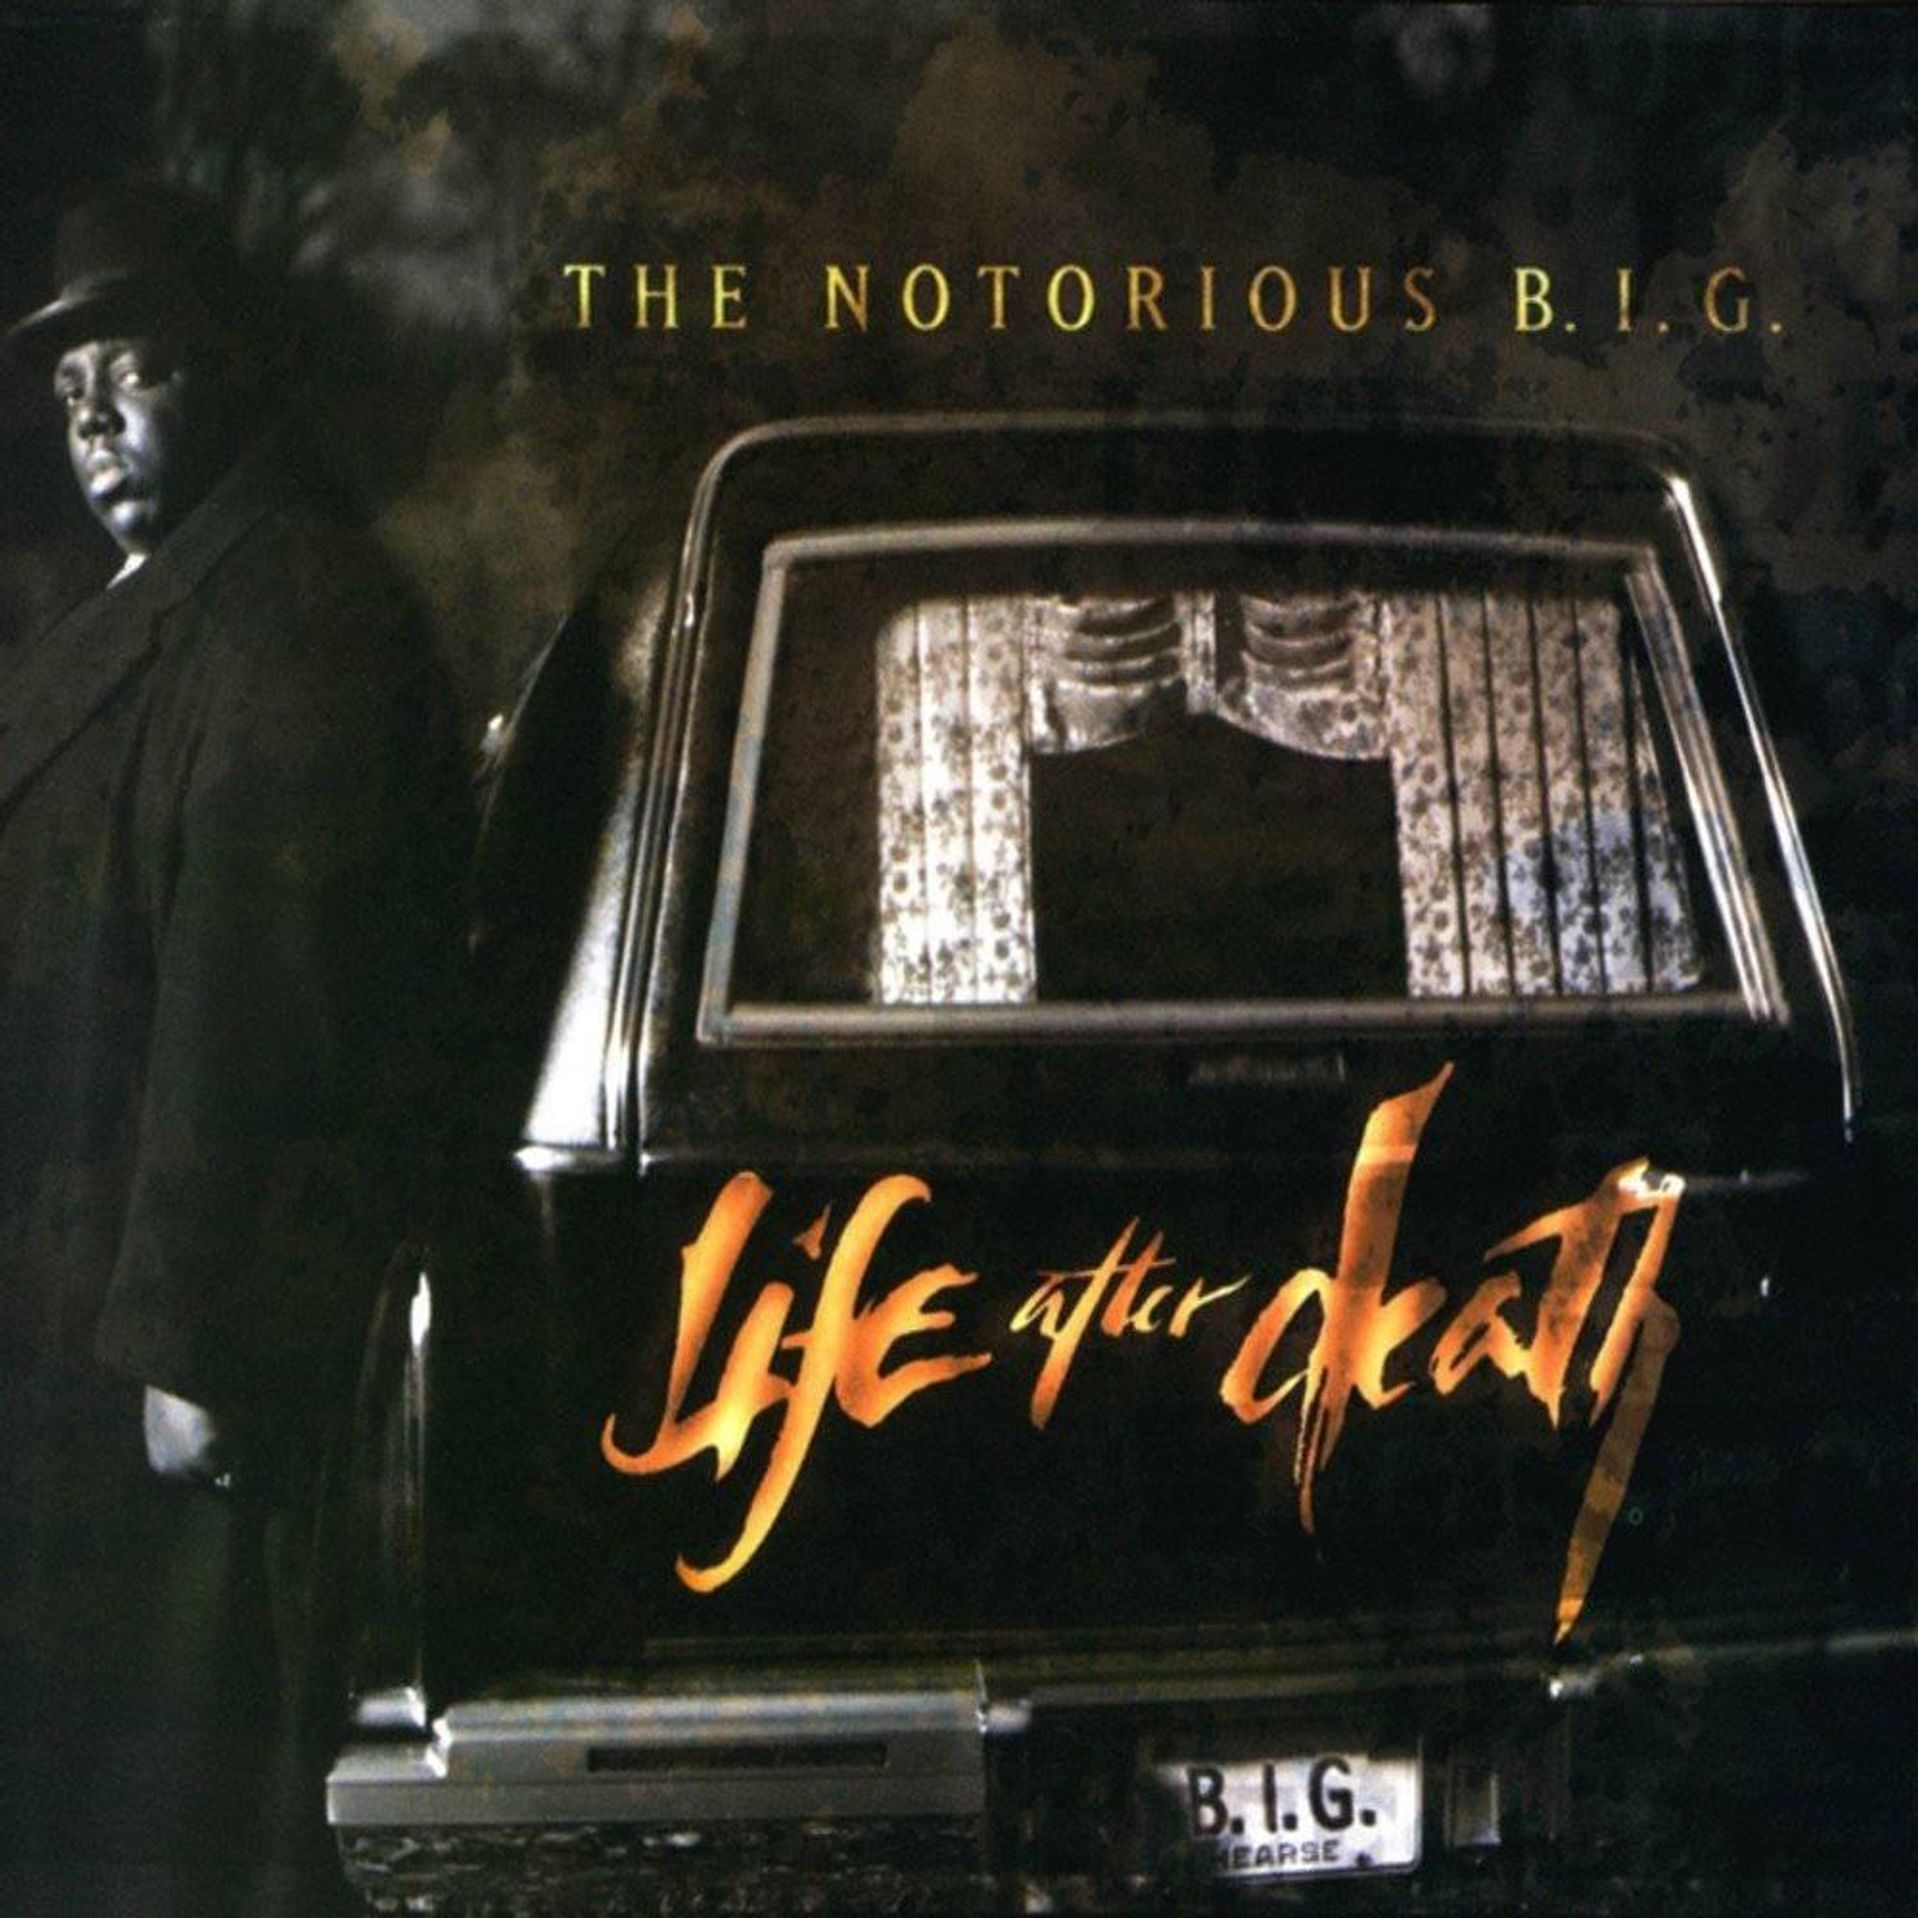 Album Title: Life After Death by: The Notorious BIG